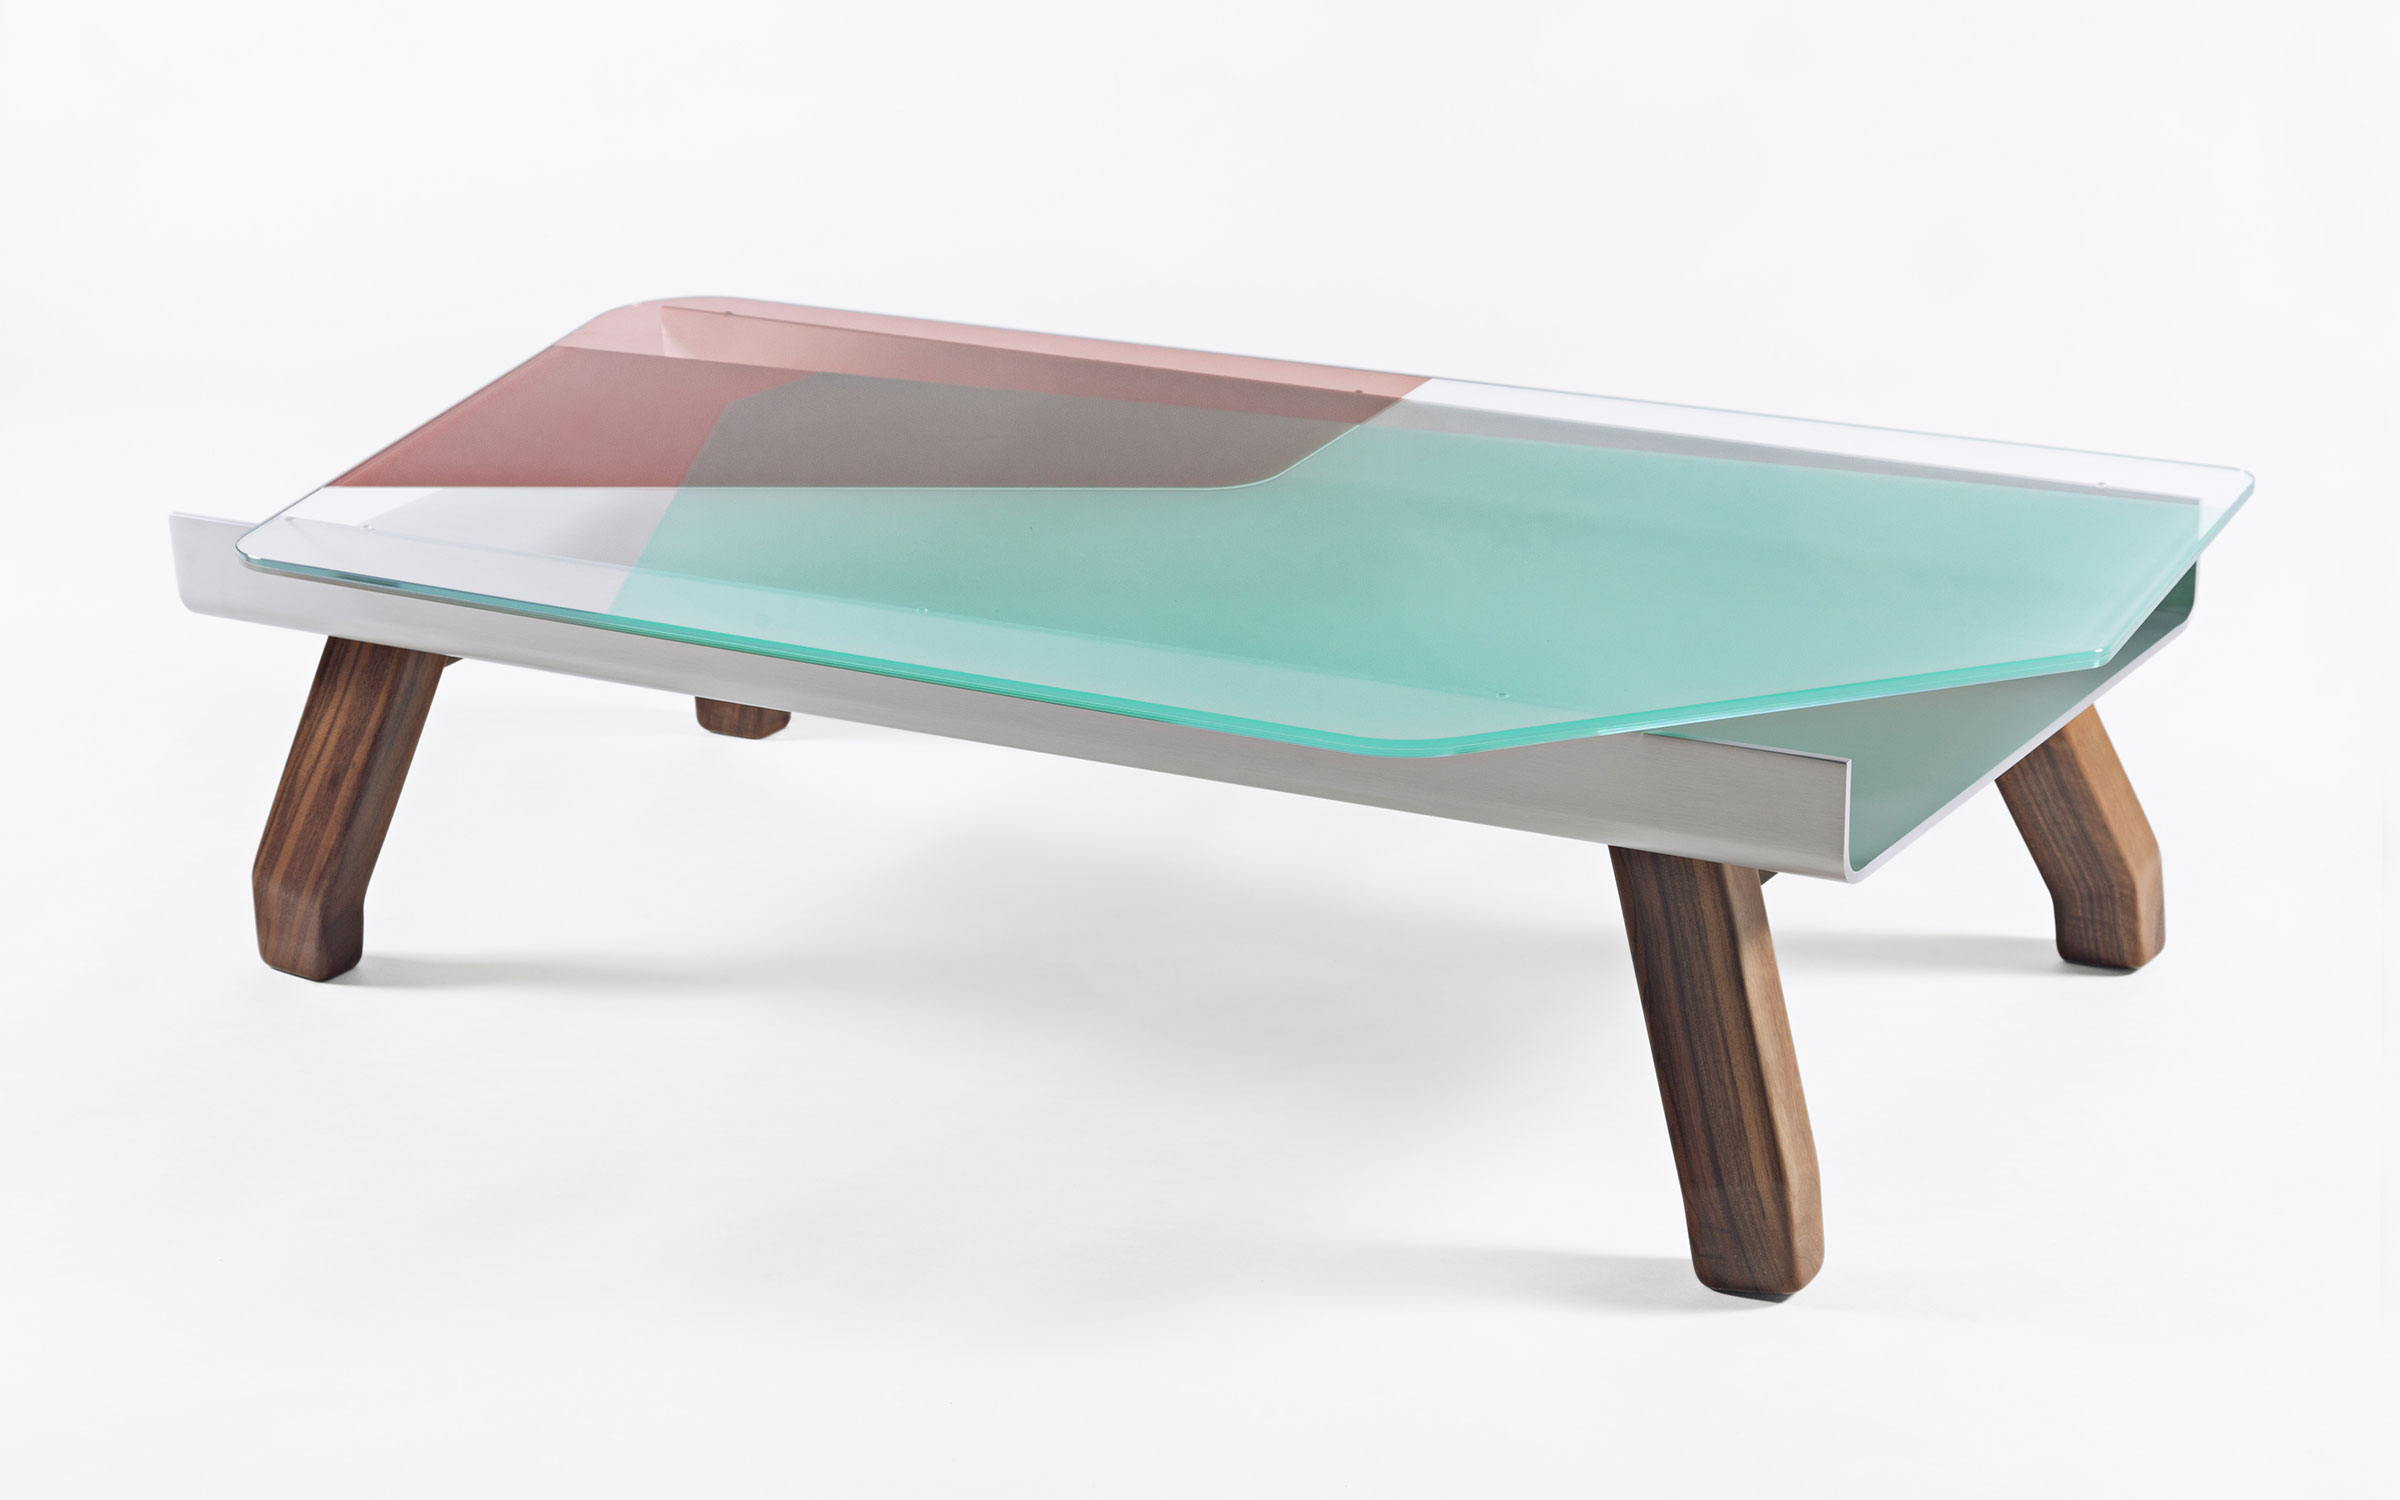 Hella Jongerius, Dragonfly coffee table on display at PAD London 2017 © Sylvie Chan-Liat, Courtesy Galerie kreo